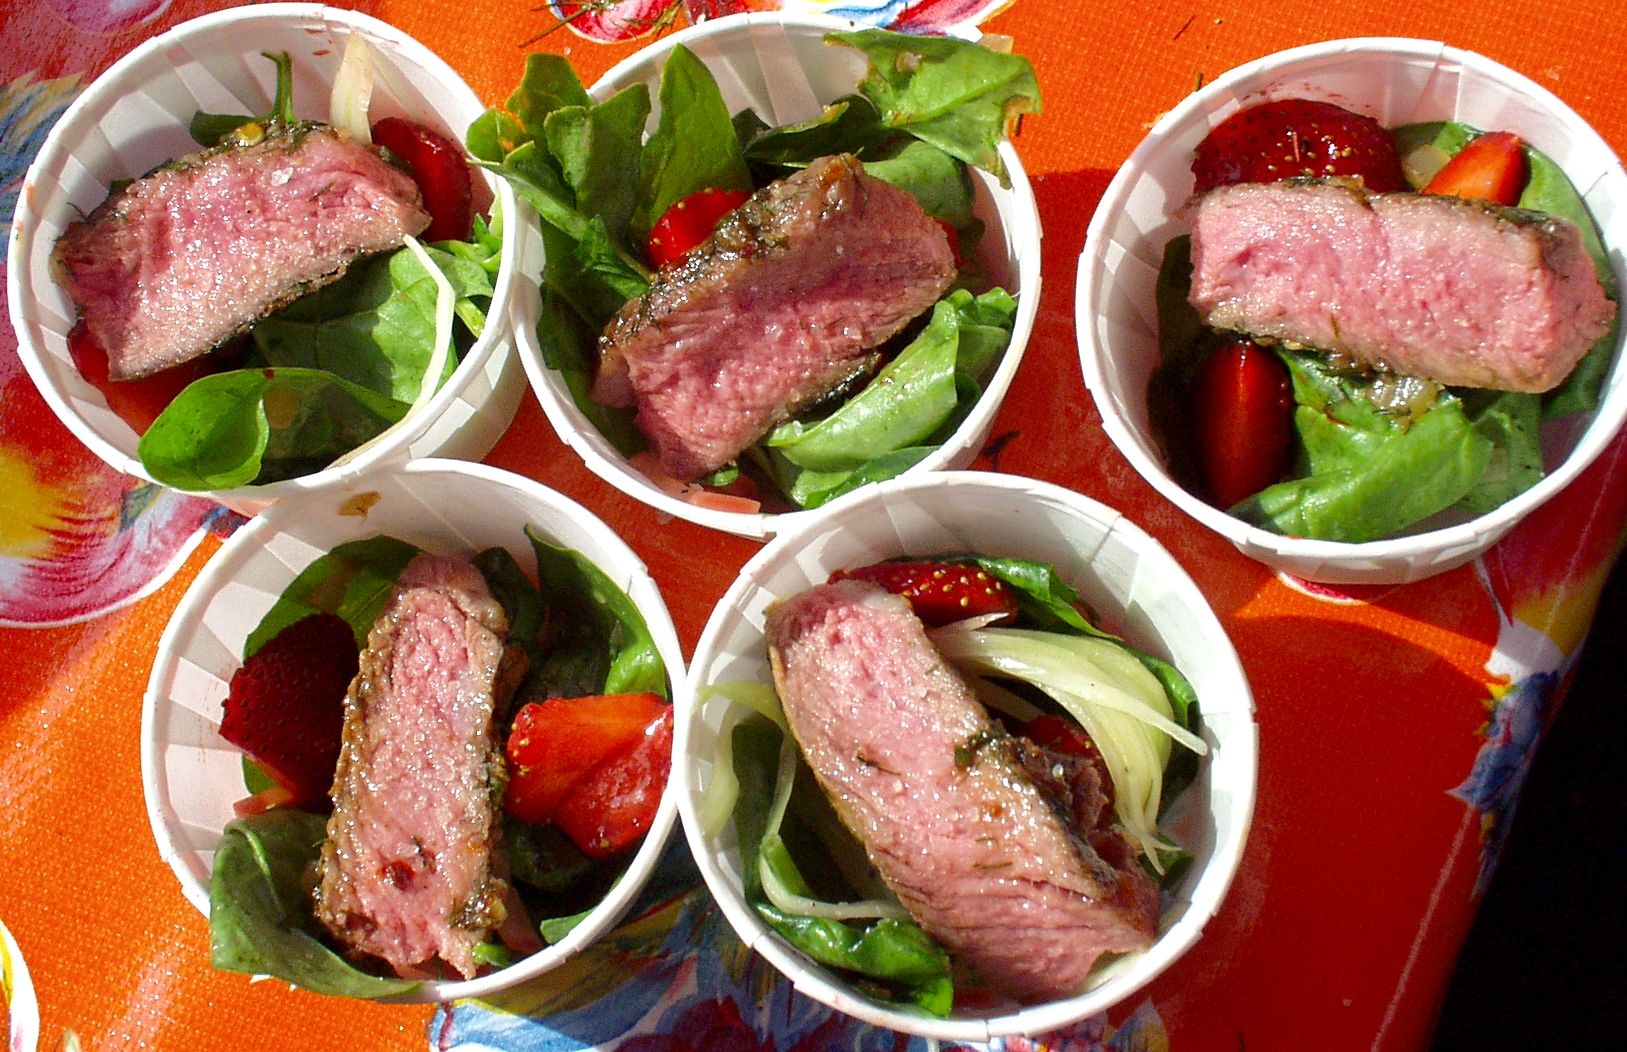 Ribeye Steak with Strawberry & Spinach Salad. Photo copyright 2009 by Zachary D. Lyons.